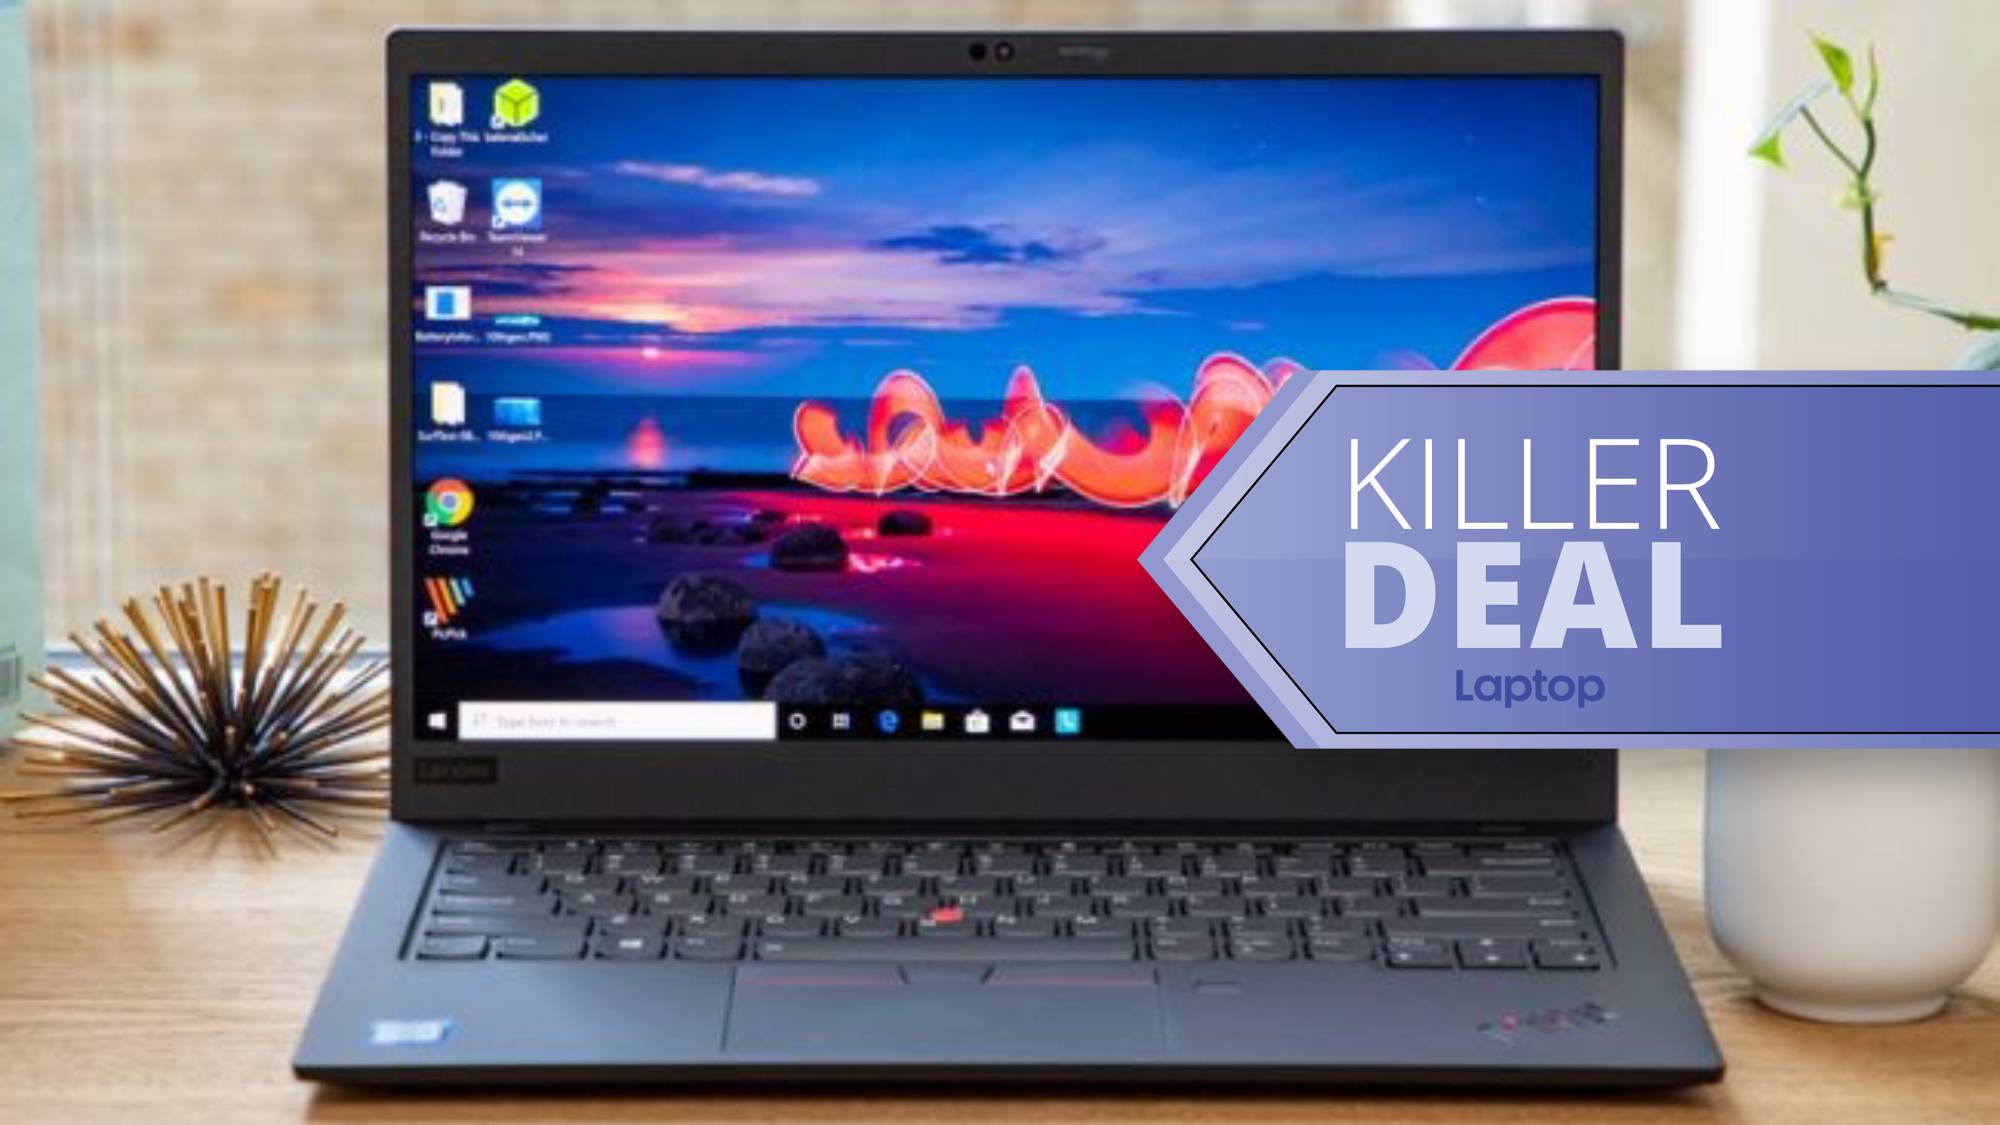 Thinkpad X1 Carbon Gen 7 Crashes To 879 Its Lowest Price Ever Laptop Mag